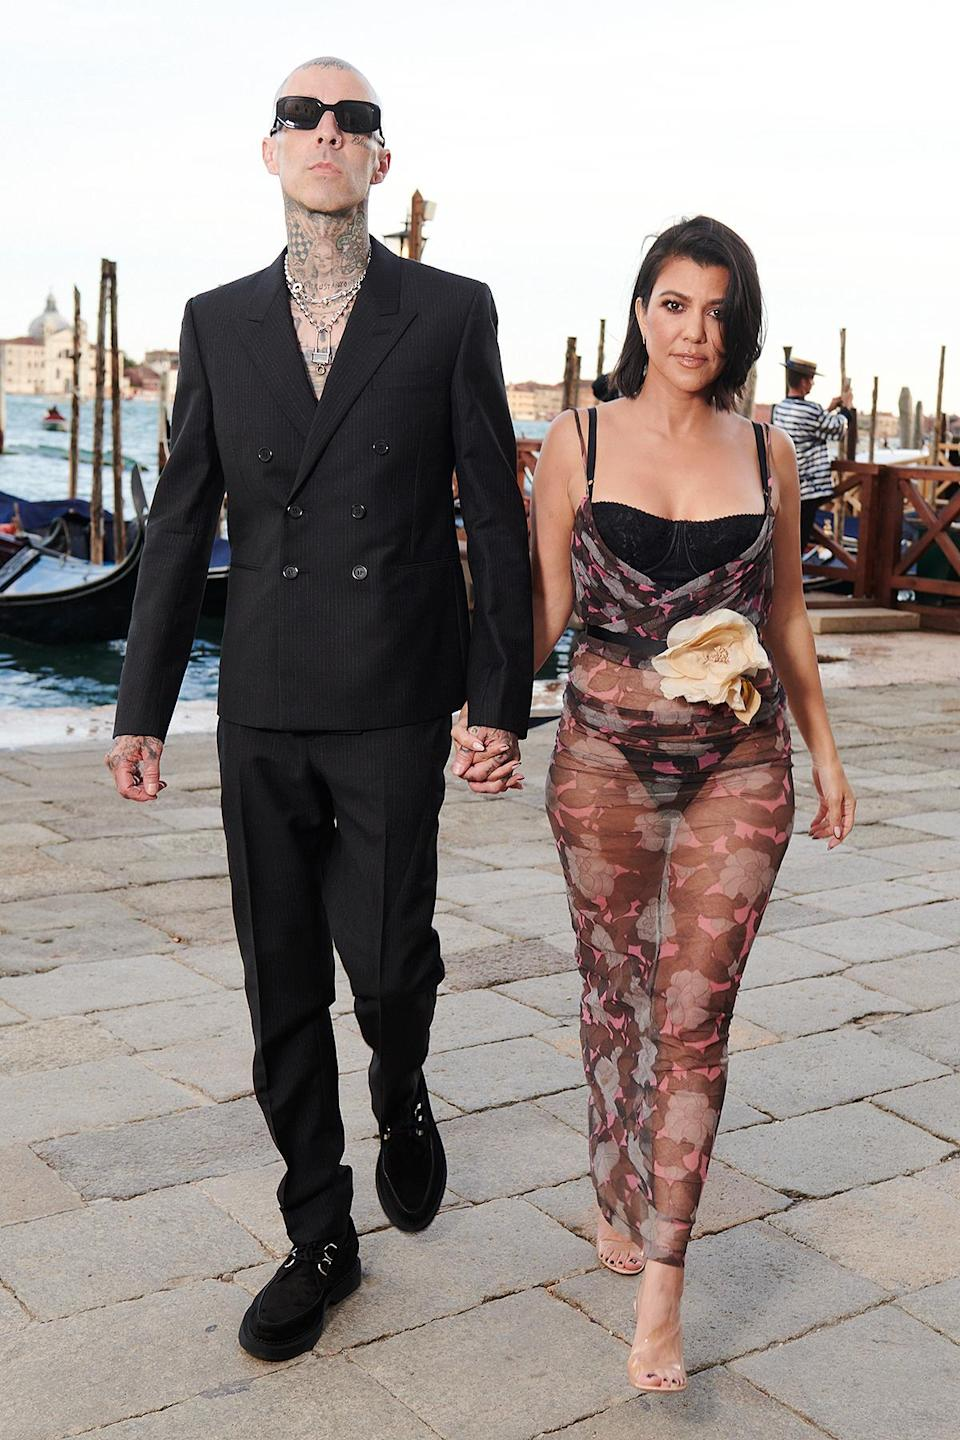 """<p>The couple <a href=""""https://people.com/style/all-the-stars-at-dolce-and-gabbana-alta-moda-show/"""" rel=""""nofollow noopener"""" target=""""_blank"""" data-ylk=""""slk:got glammed up"""" class=""""link rapid-noclick-resp"""">got glammed up</a> for the star-studded Dolce & Gabbana Alta Moda Women's Show in Venice on Aug. 29.</p>"""